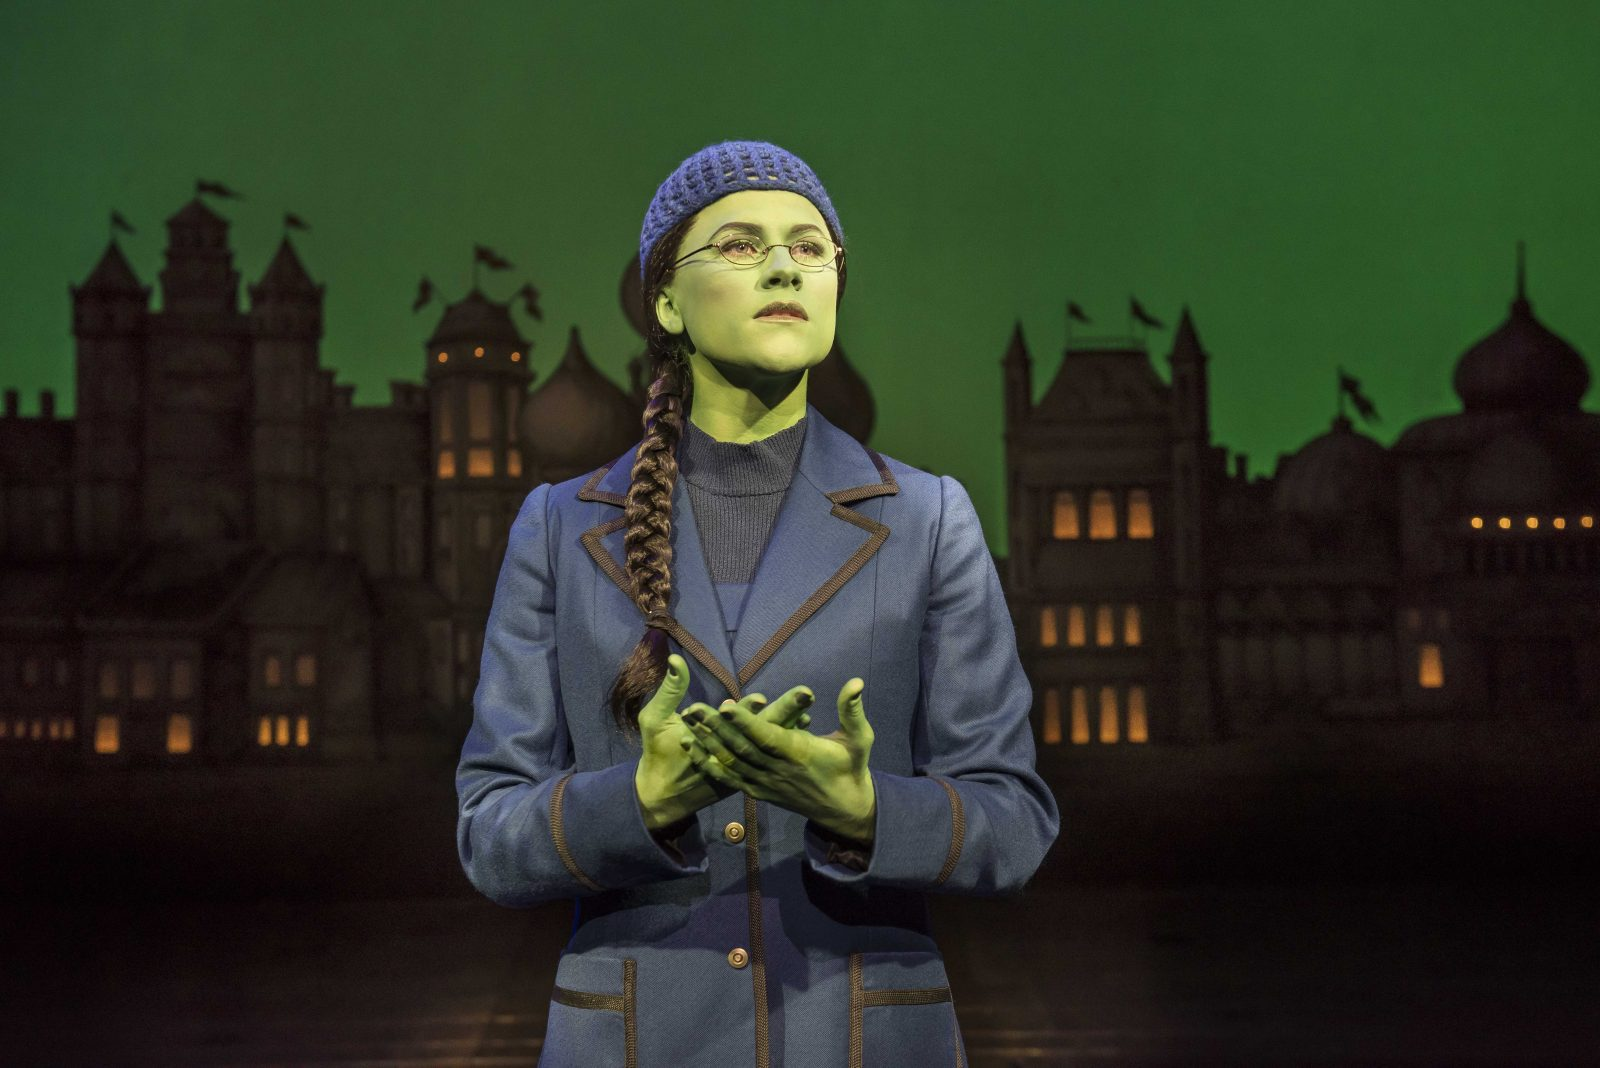 amy ross as elphaba, wearing all black and standing looking up at stage right with hands together